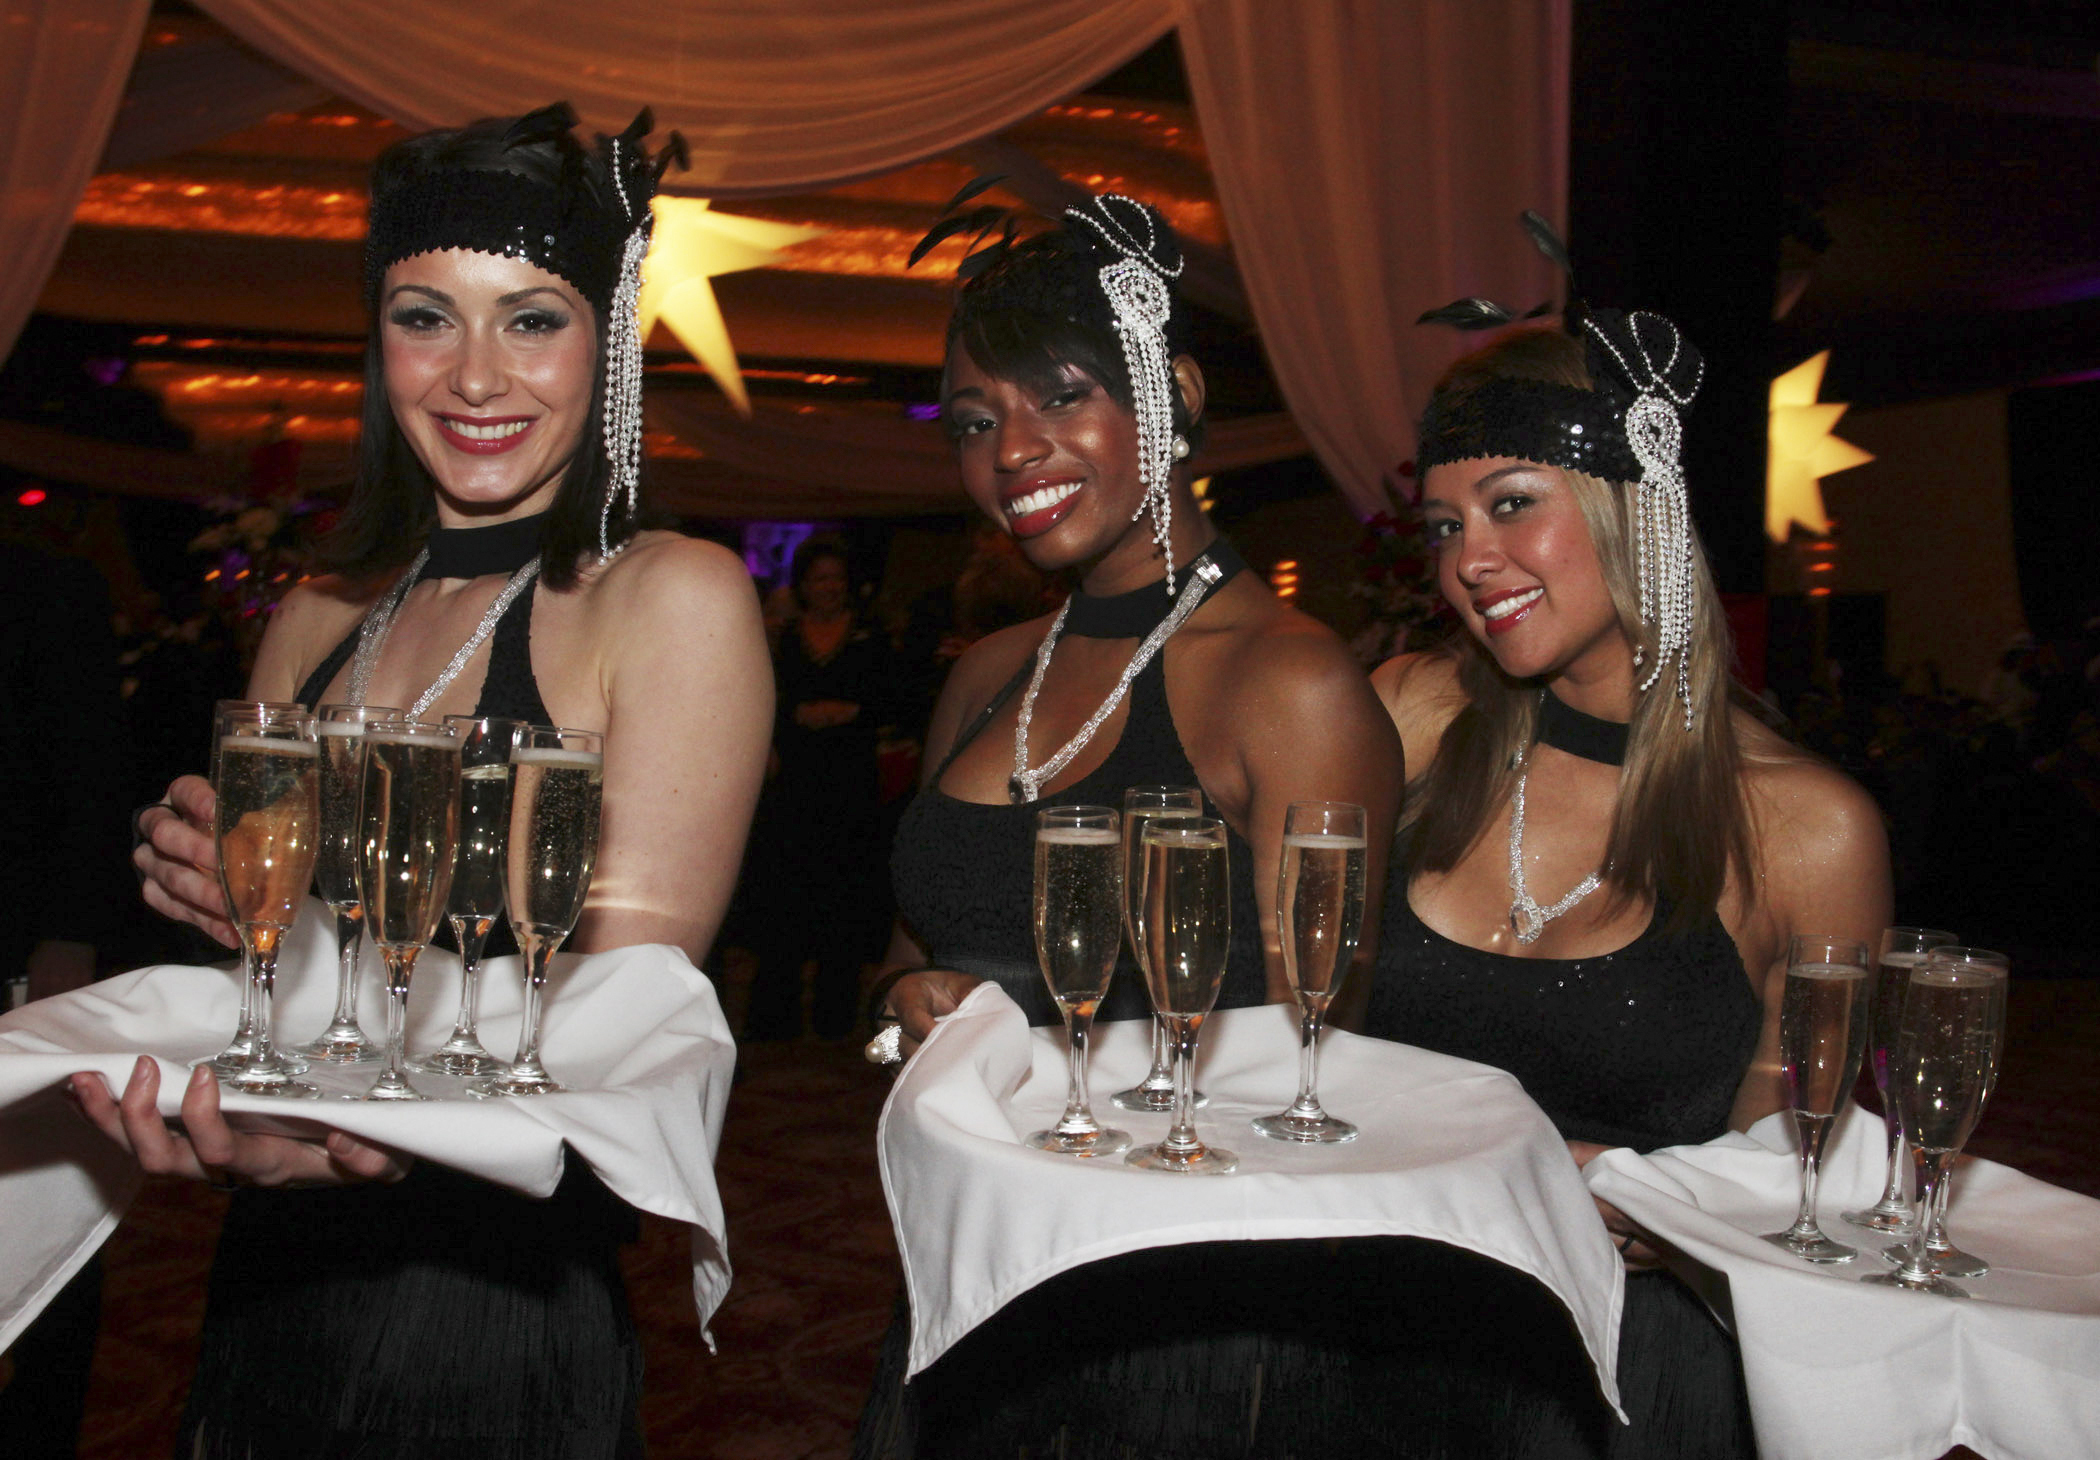 waiters in the casino of Moscow